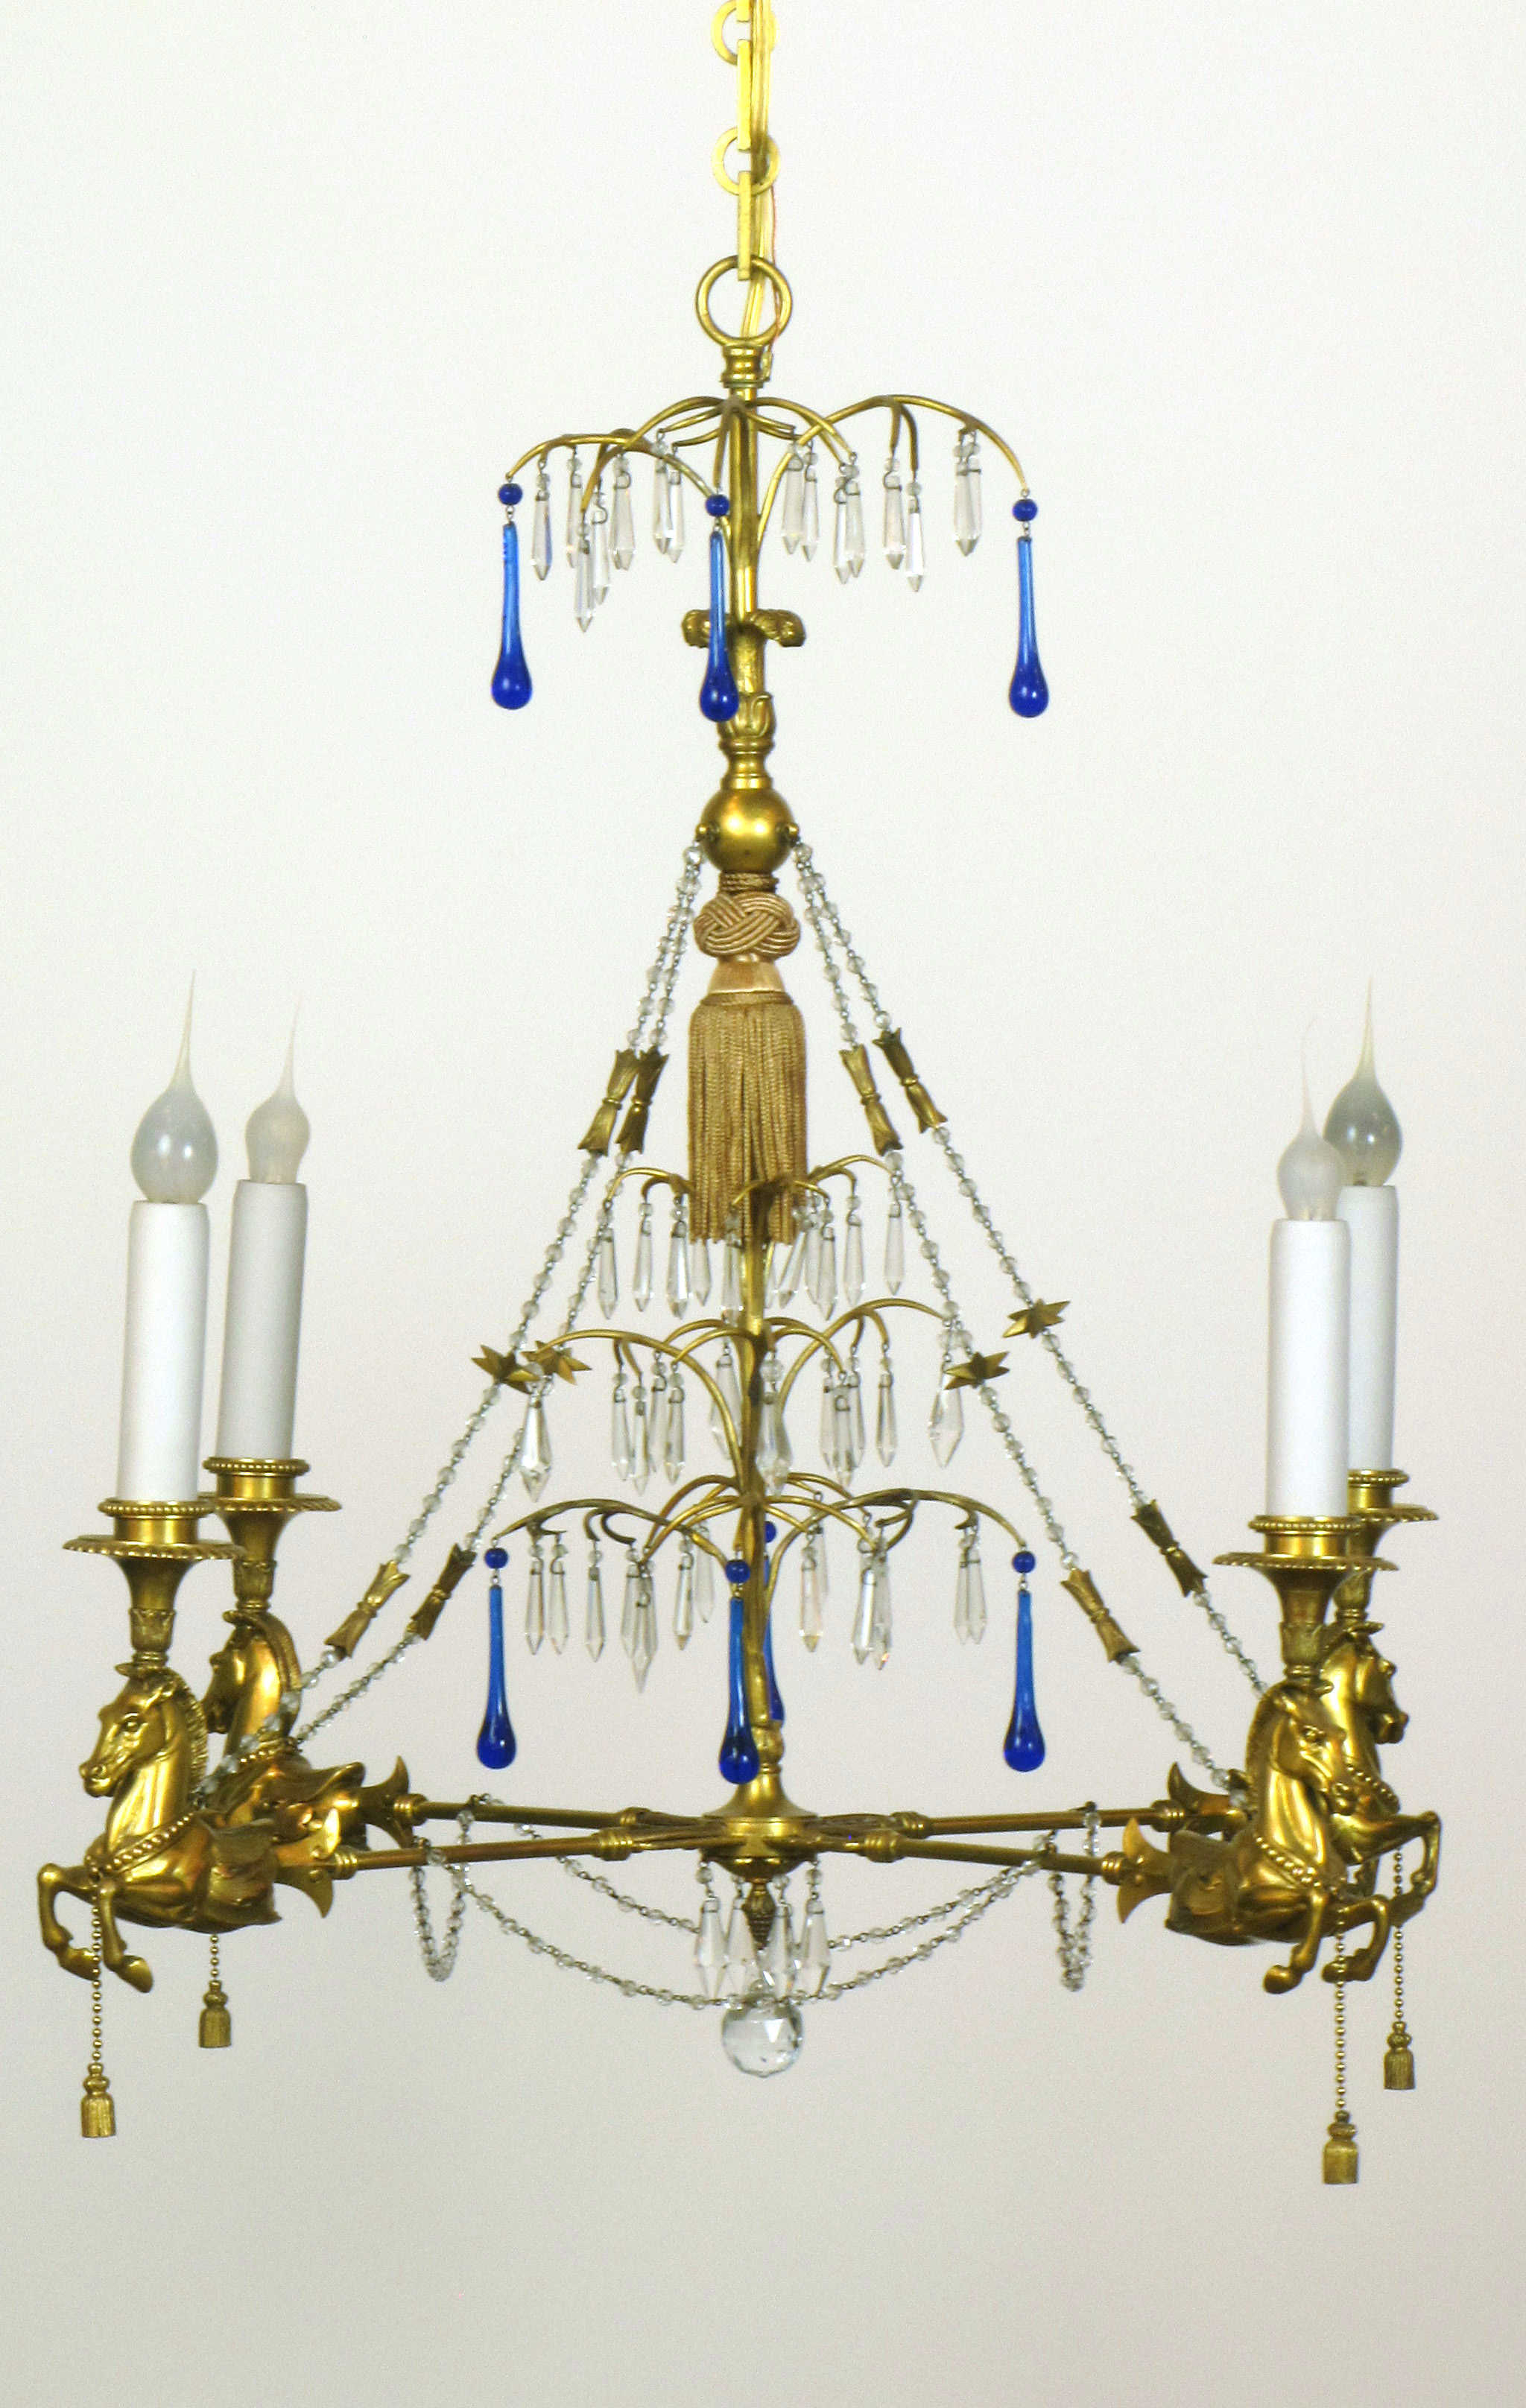 chandeliers foohoo black furniture for chandelier vintage uk sale company hire goth co event pin